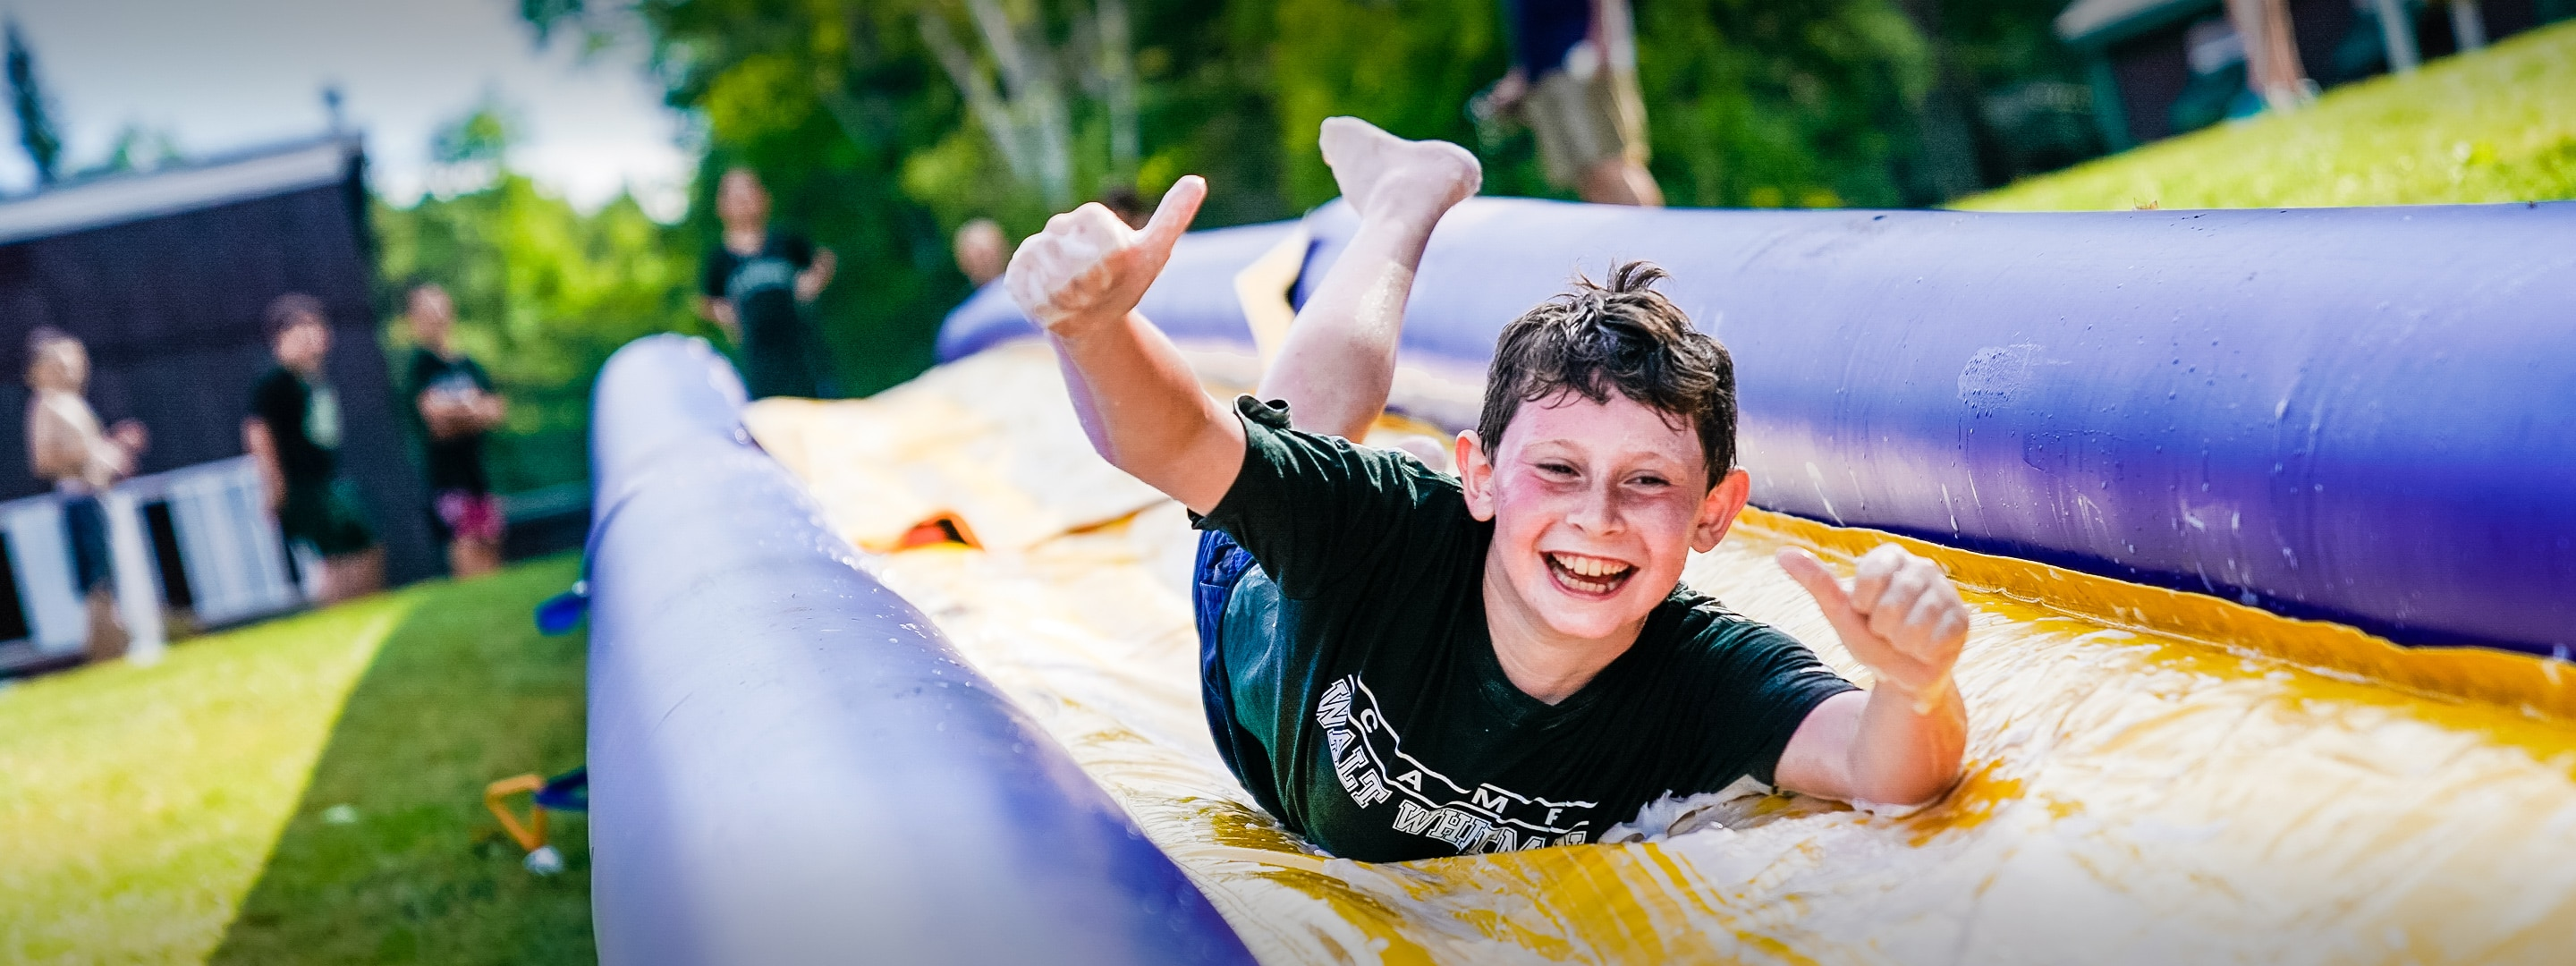 boy sliding on a slip and slide